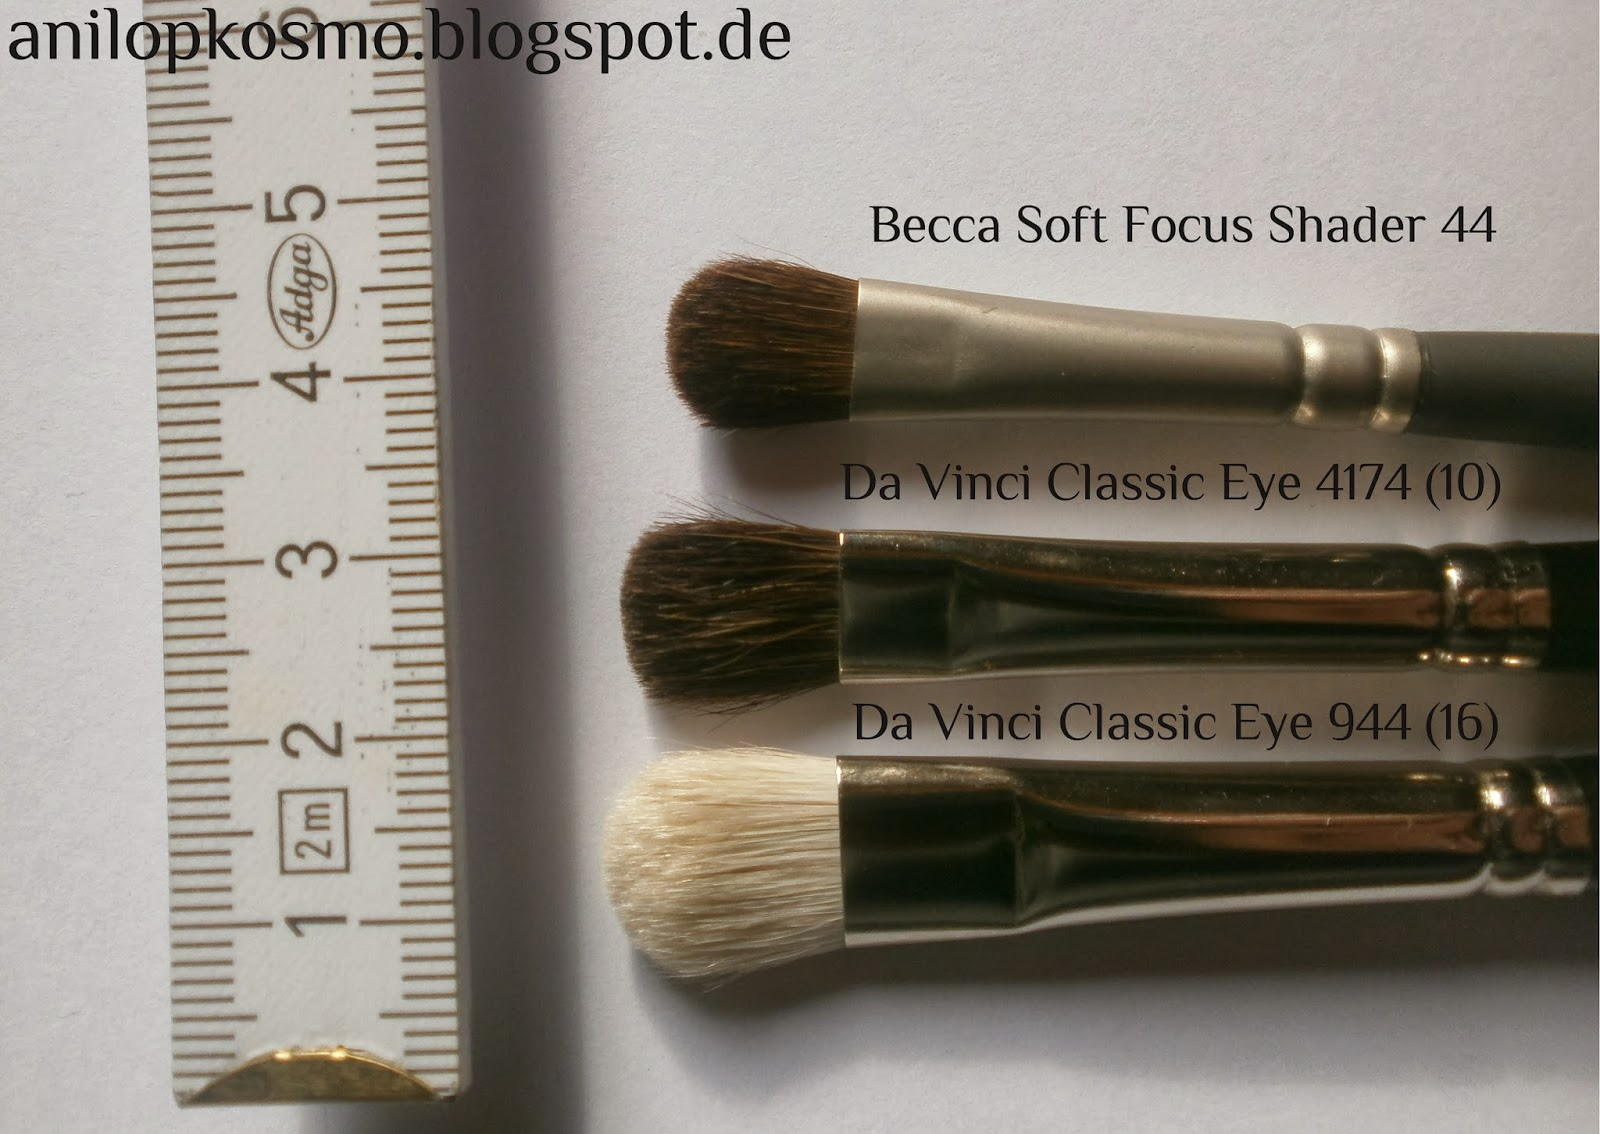 Da Vinci, Becca brush, review, swatches